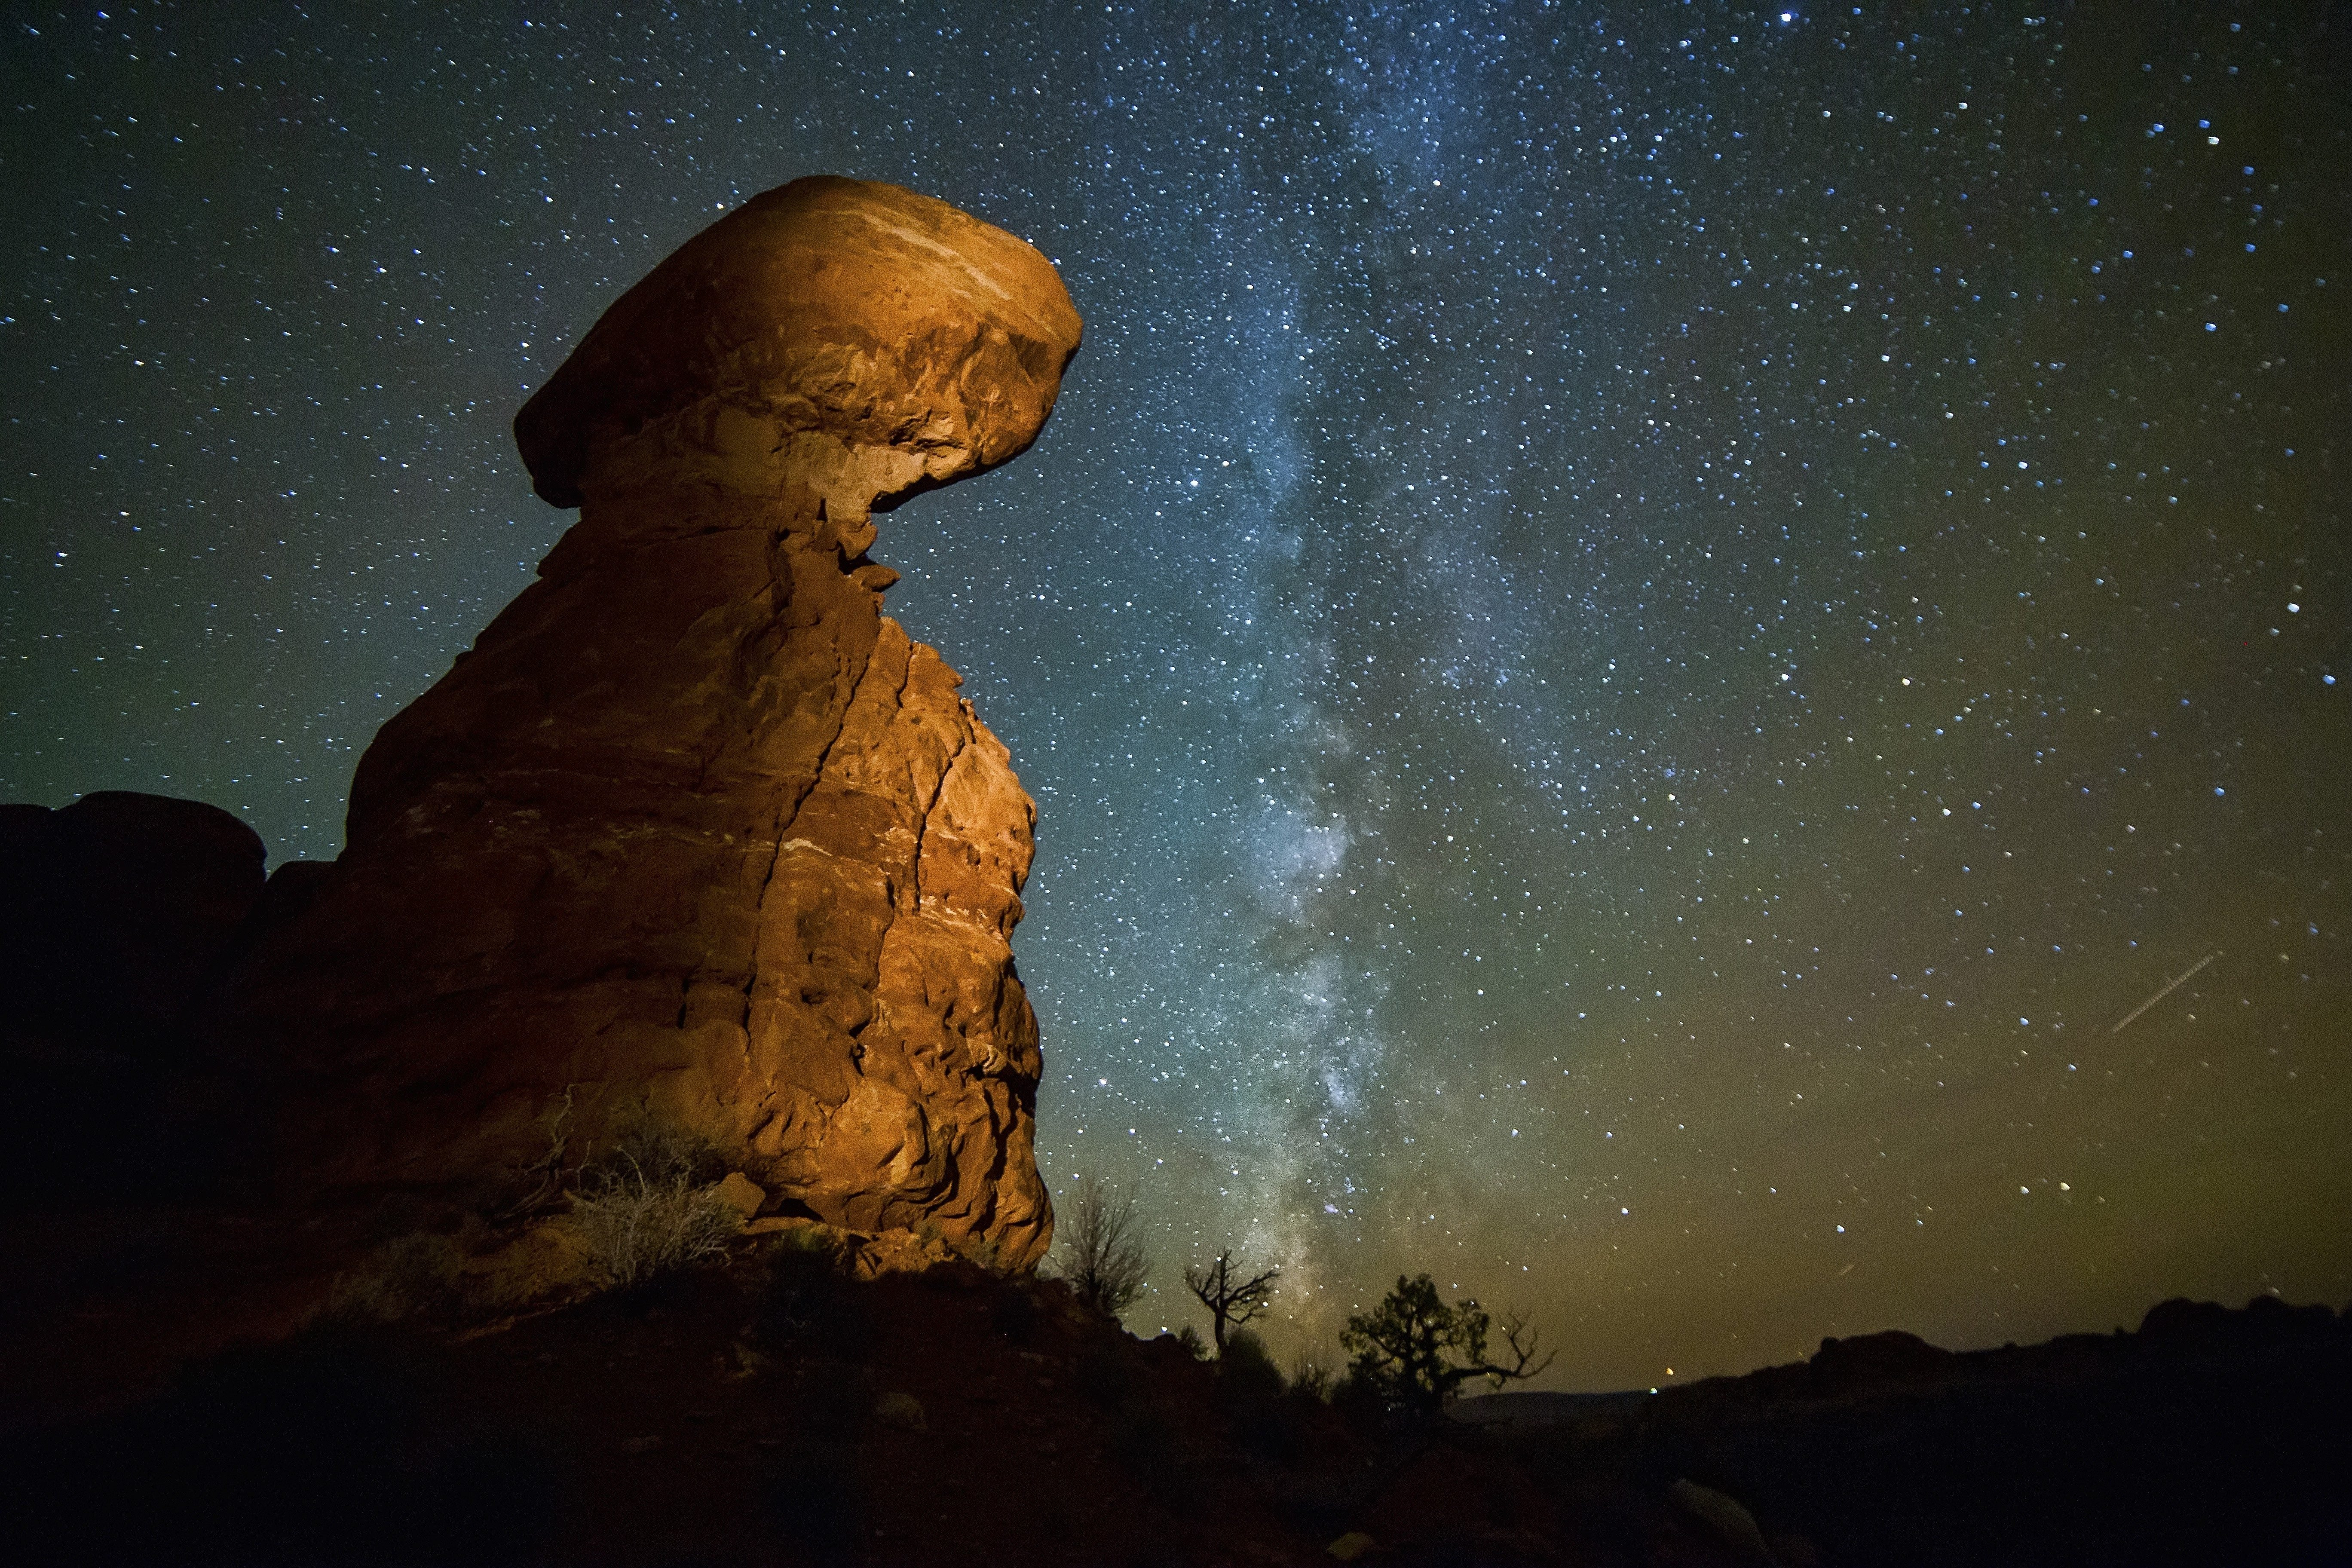 Night shot of Balanced Rock at Arches National Park in Utah, with the Milky Way visible in the dark sky.